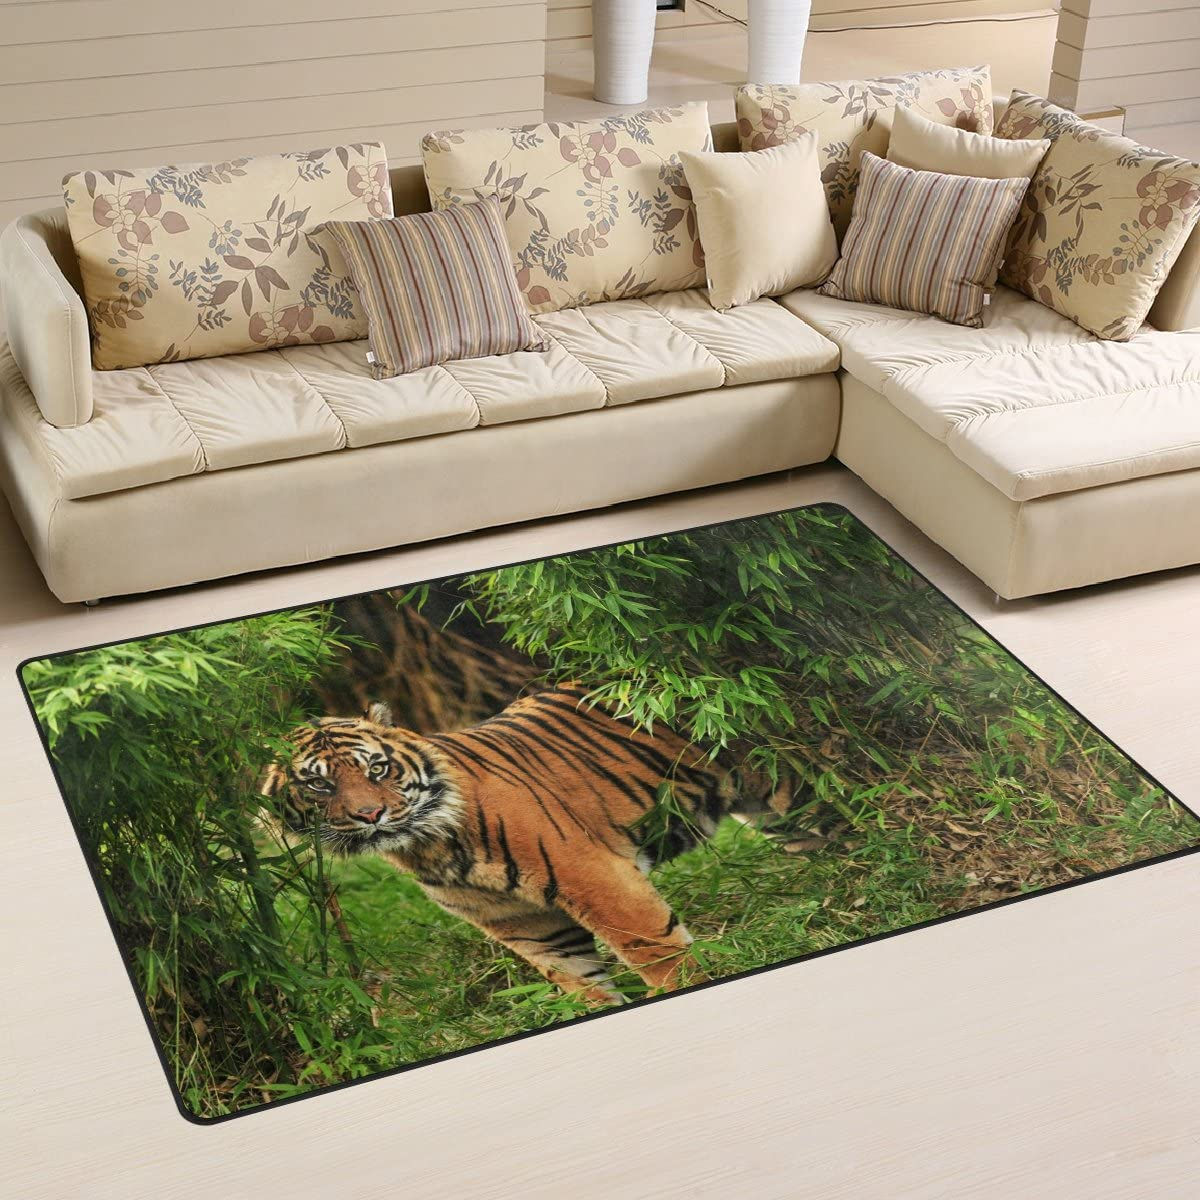 WellLee Animal Area Rug,Jungle Beast Scary Wild Angry Tiger Portrait Floor Rug Non-Slip Doormat for Living Dining Dorm Room Bedroom Decor 31x20 Inch